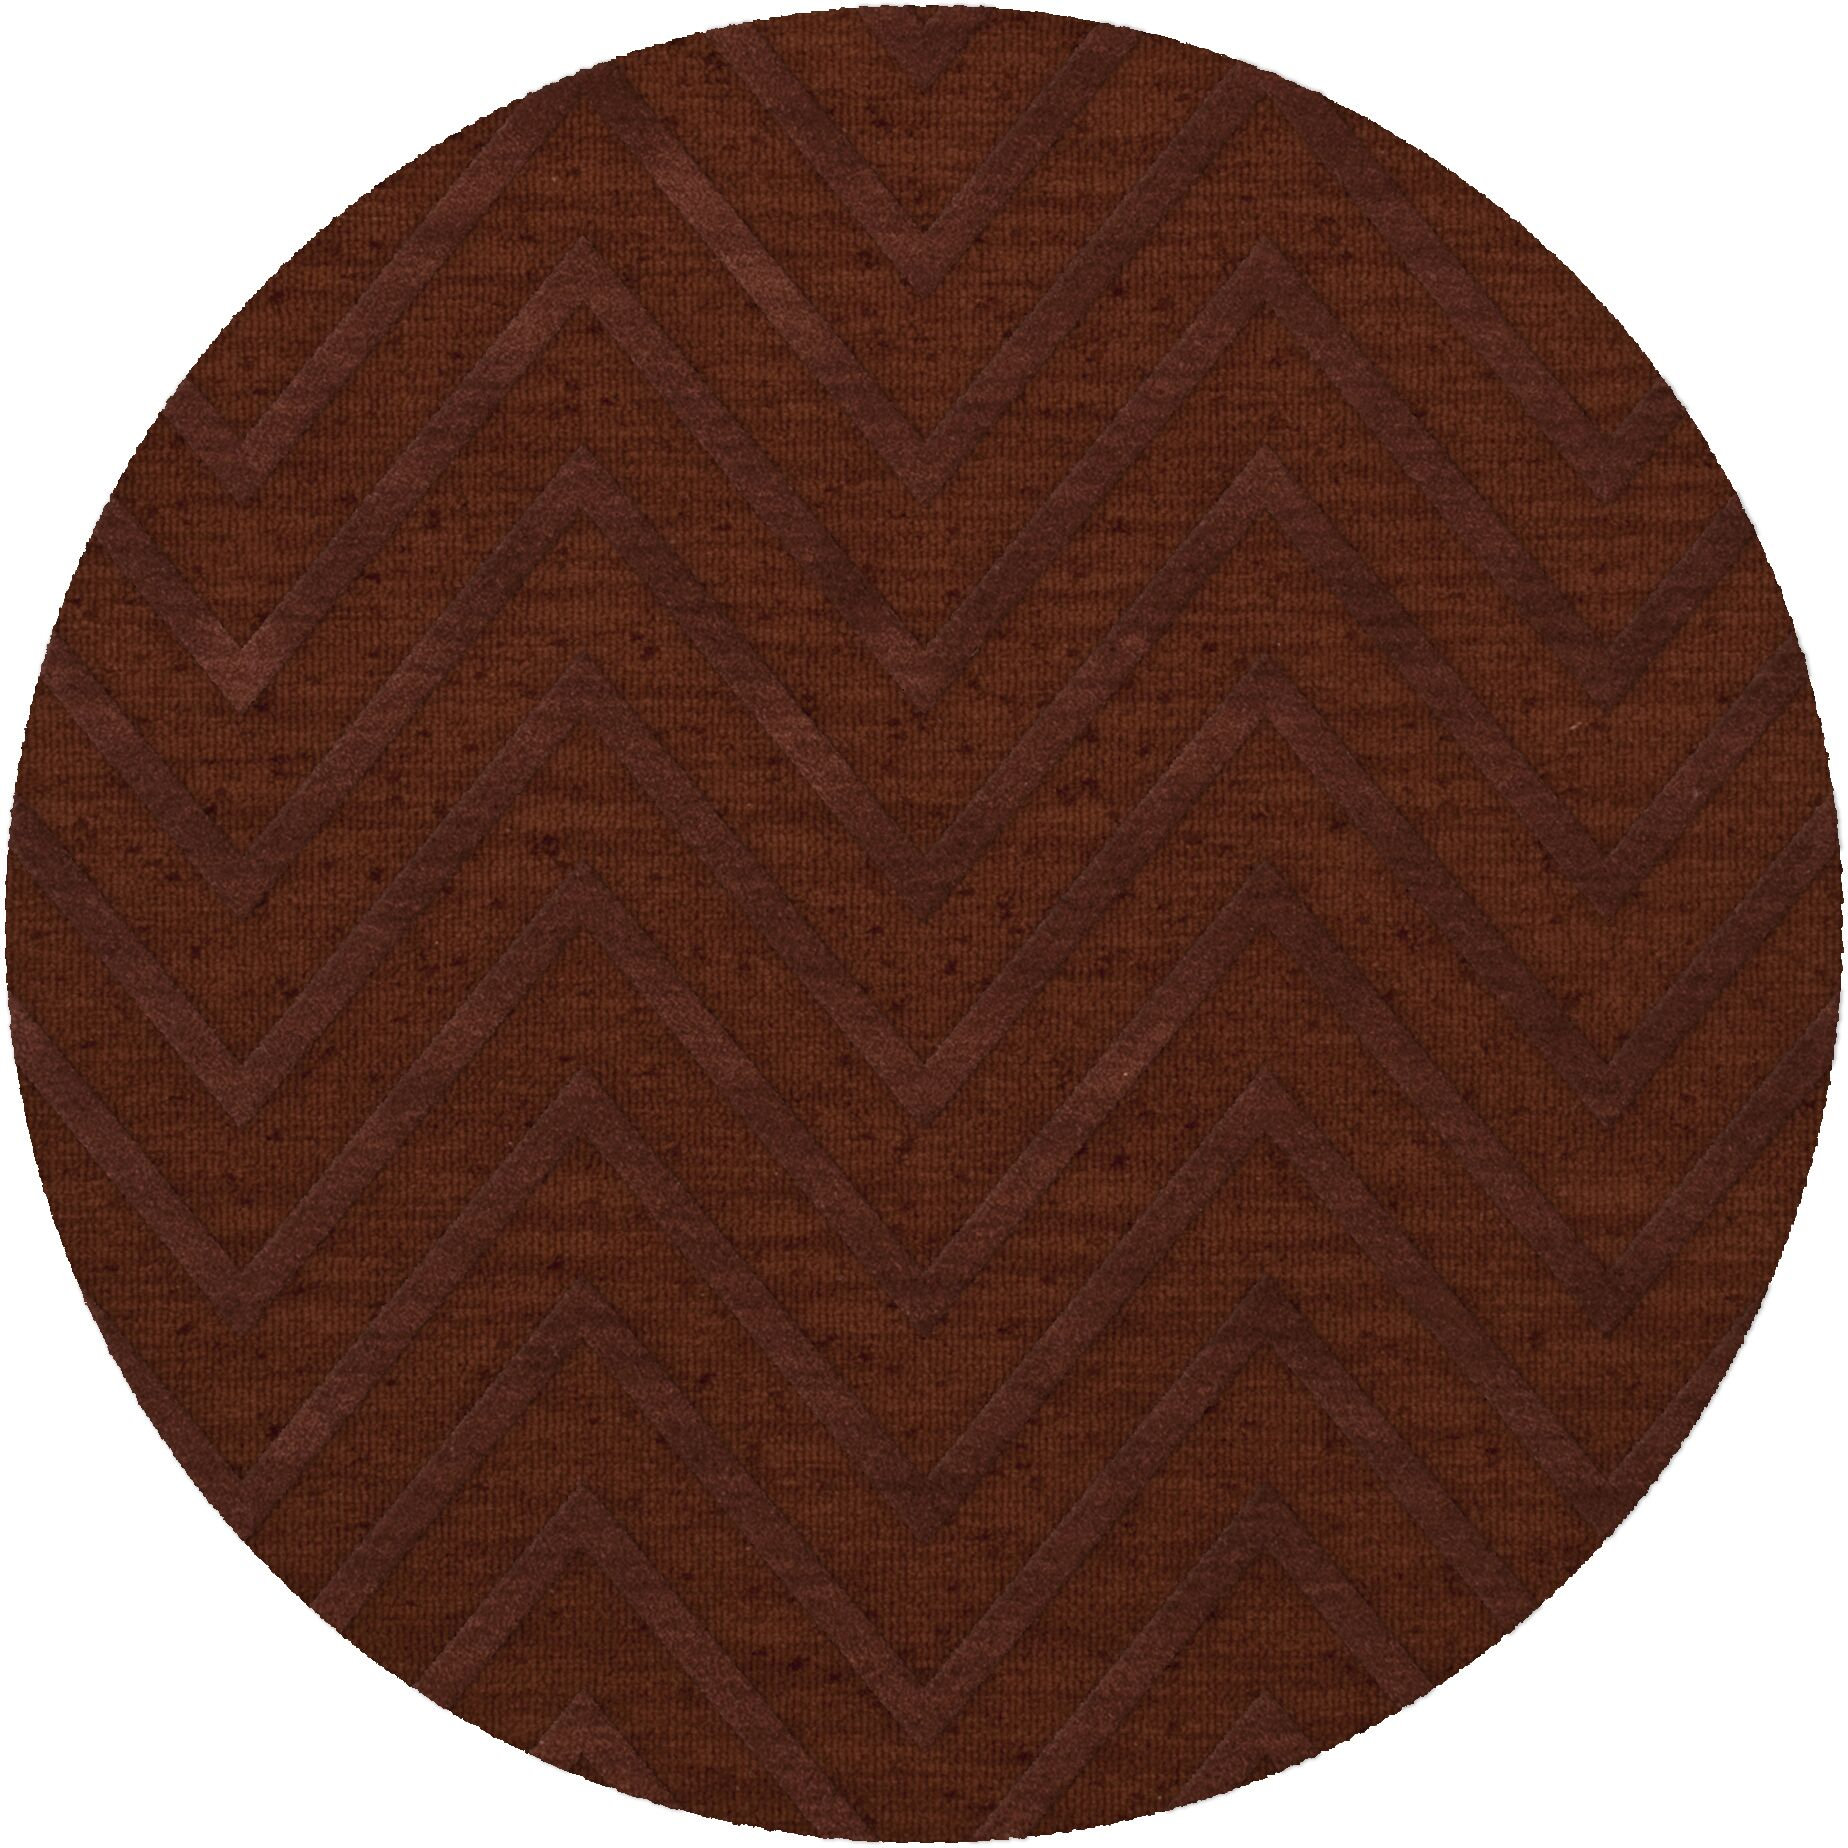 Dover Tufted Wool Paprika Area Rug Rug Size: Round 12'